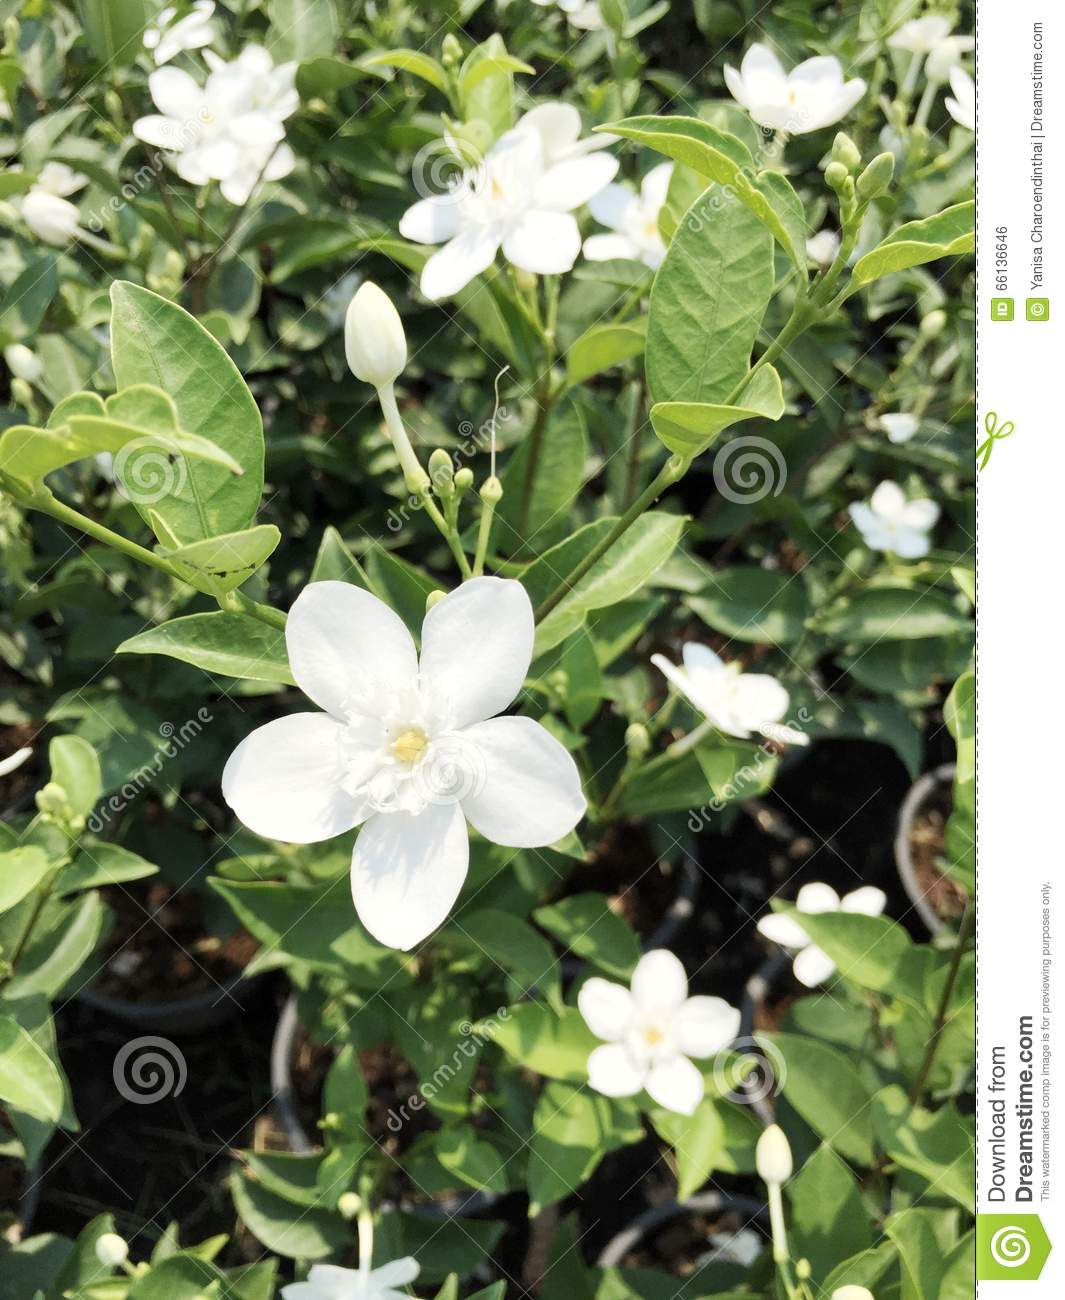 Snowflake white flowers stock photo image of southeast 66136646 snowflake or inda flowers origins in srilanka tropical plant usually grow in southeast asia mightylinksfo